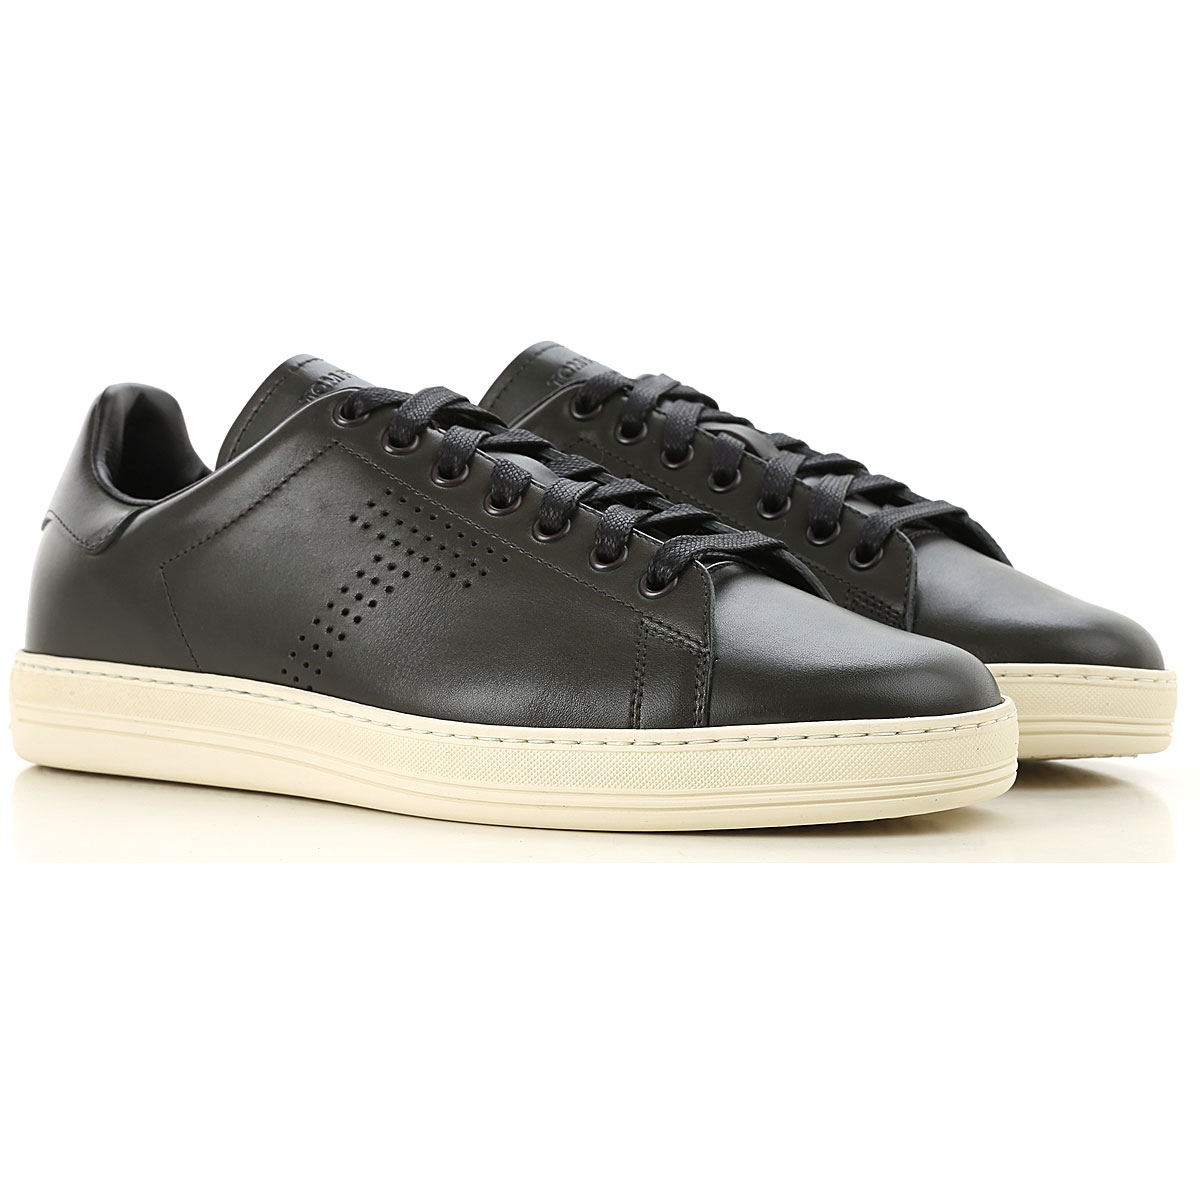 Image of Tom Ford Sneakers for Men, Dark Green, Leather, 2017, 10 10.5 11 7.5 8 9